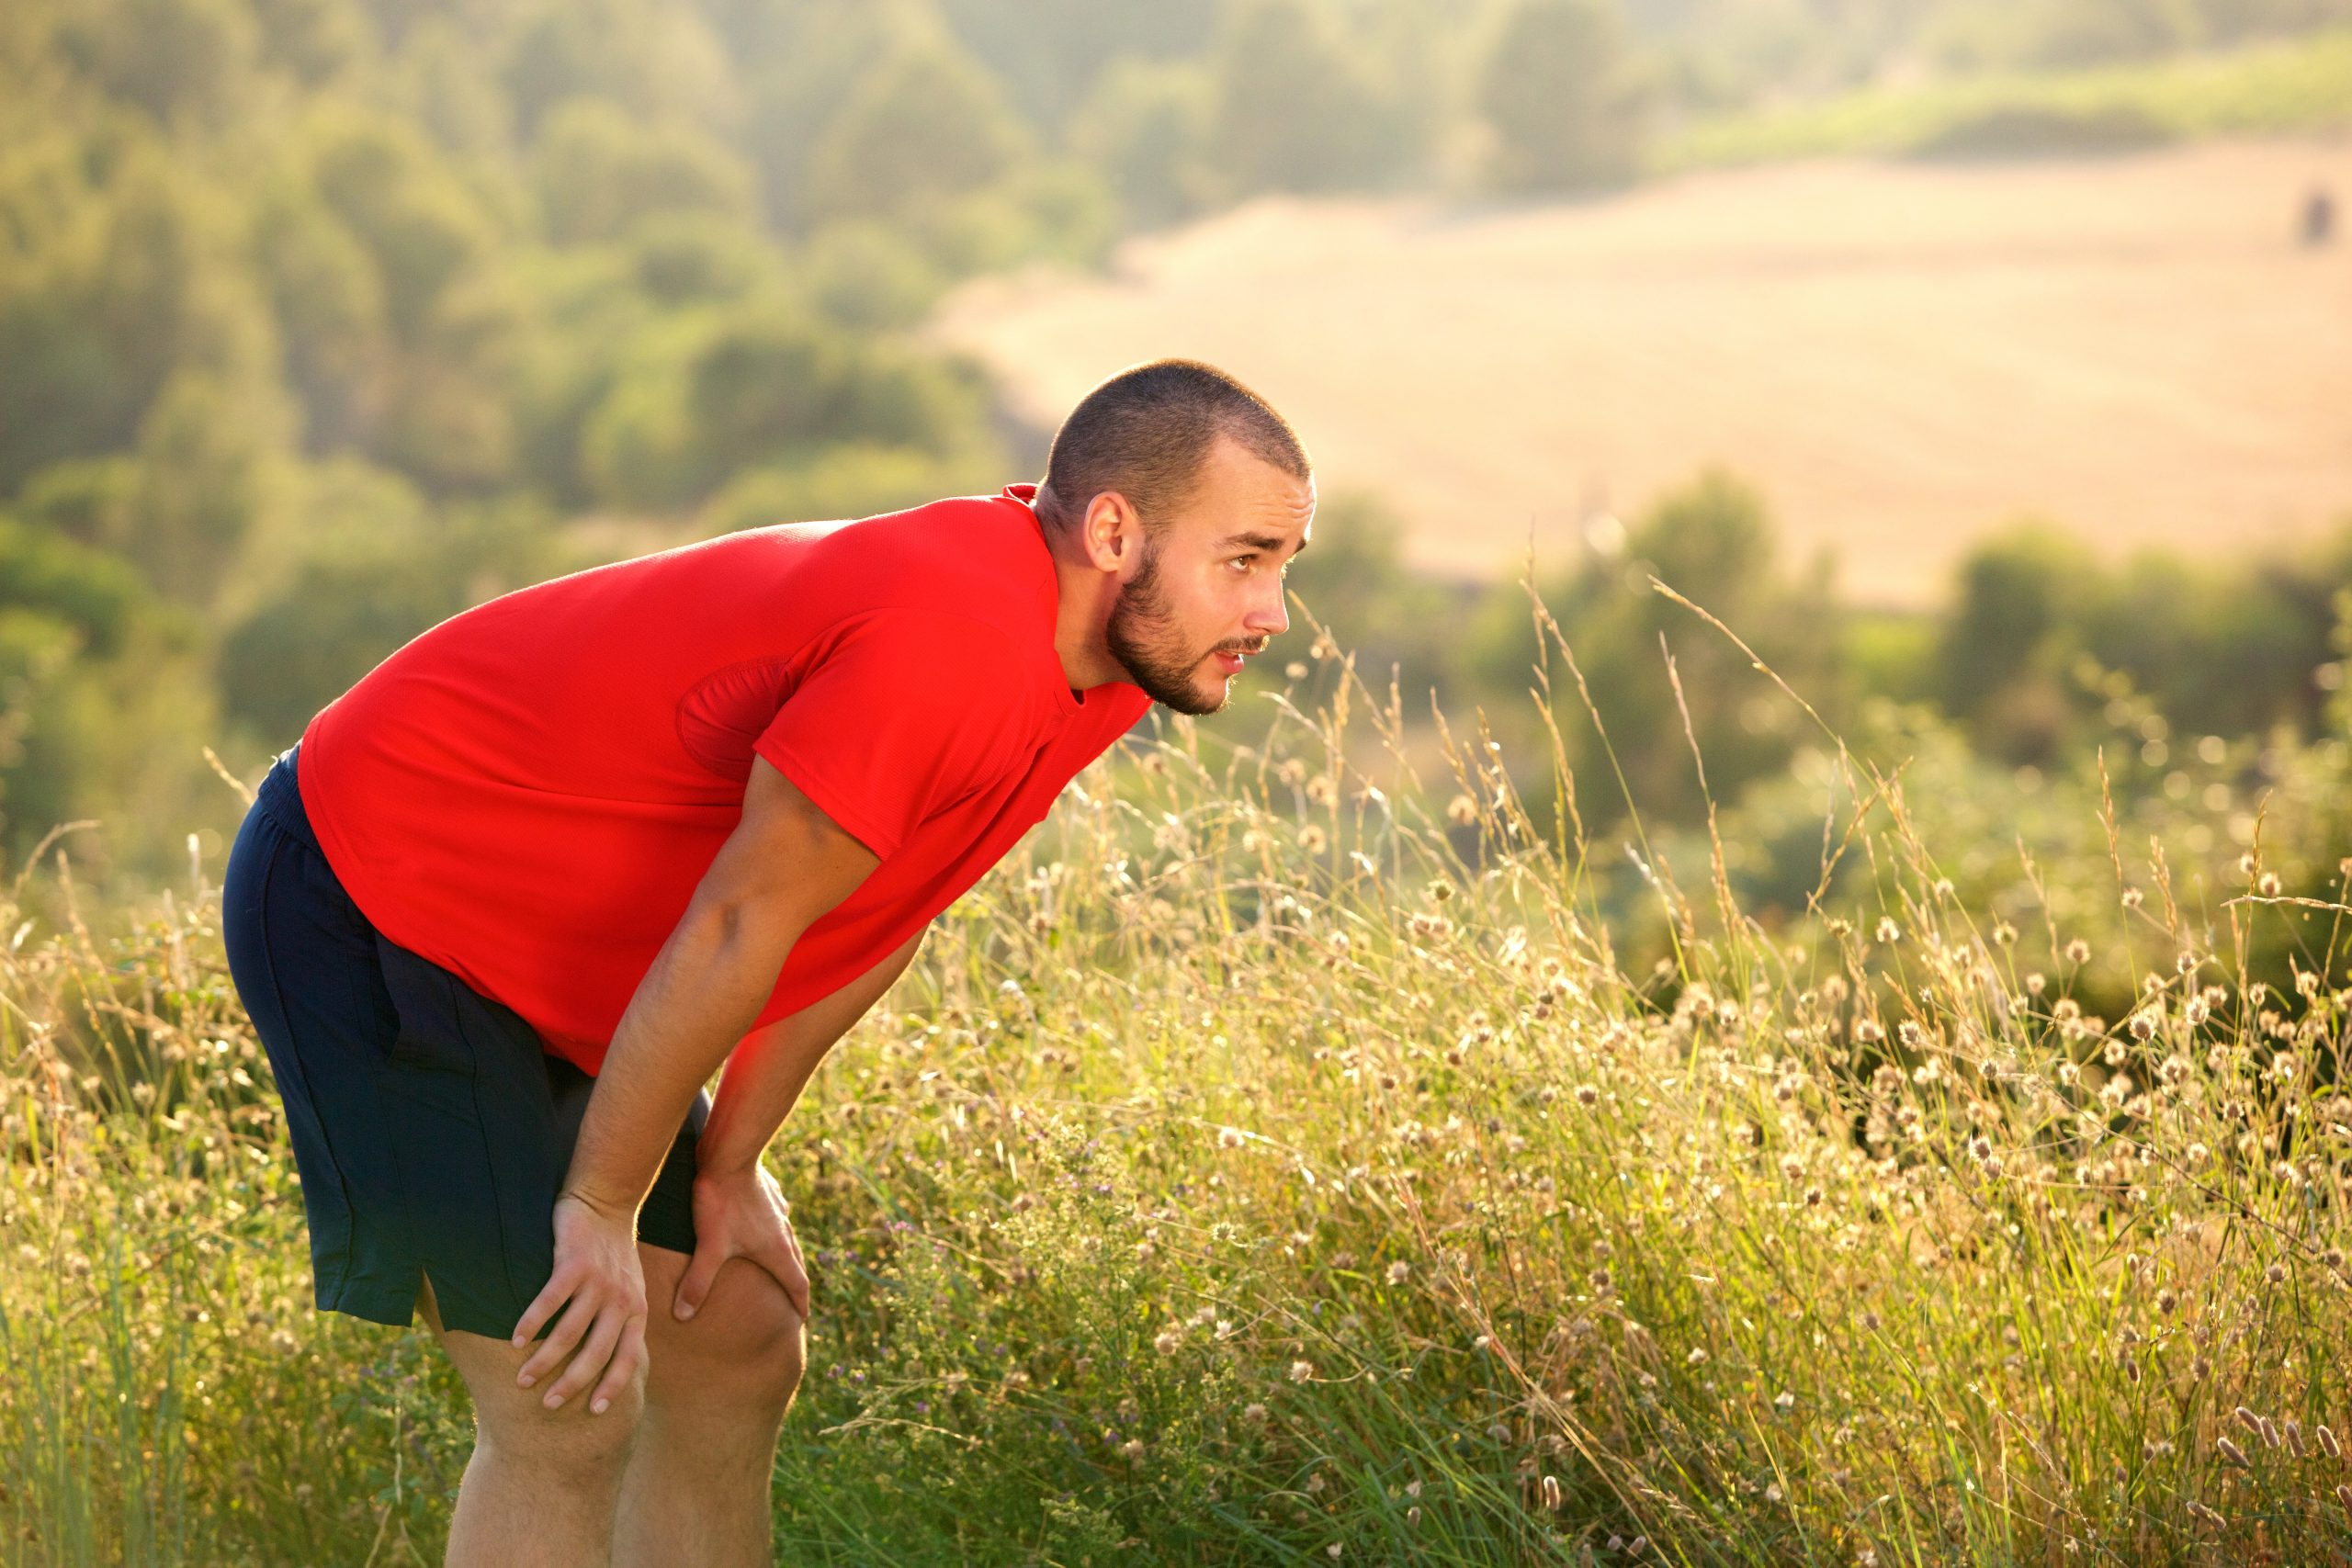 Tired sports man relaxing after running exercise workout